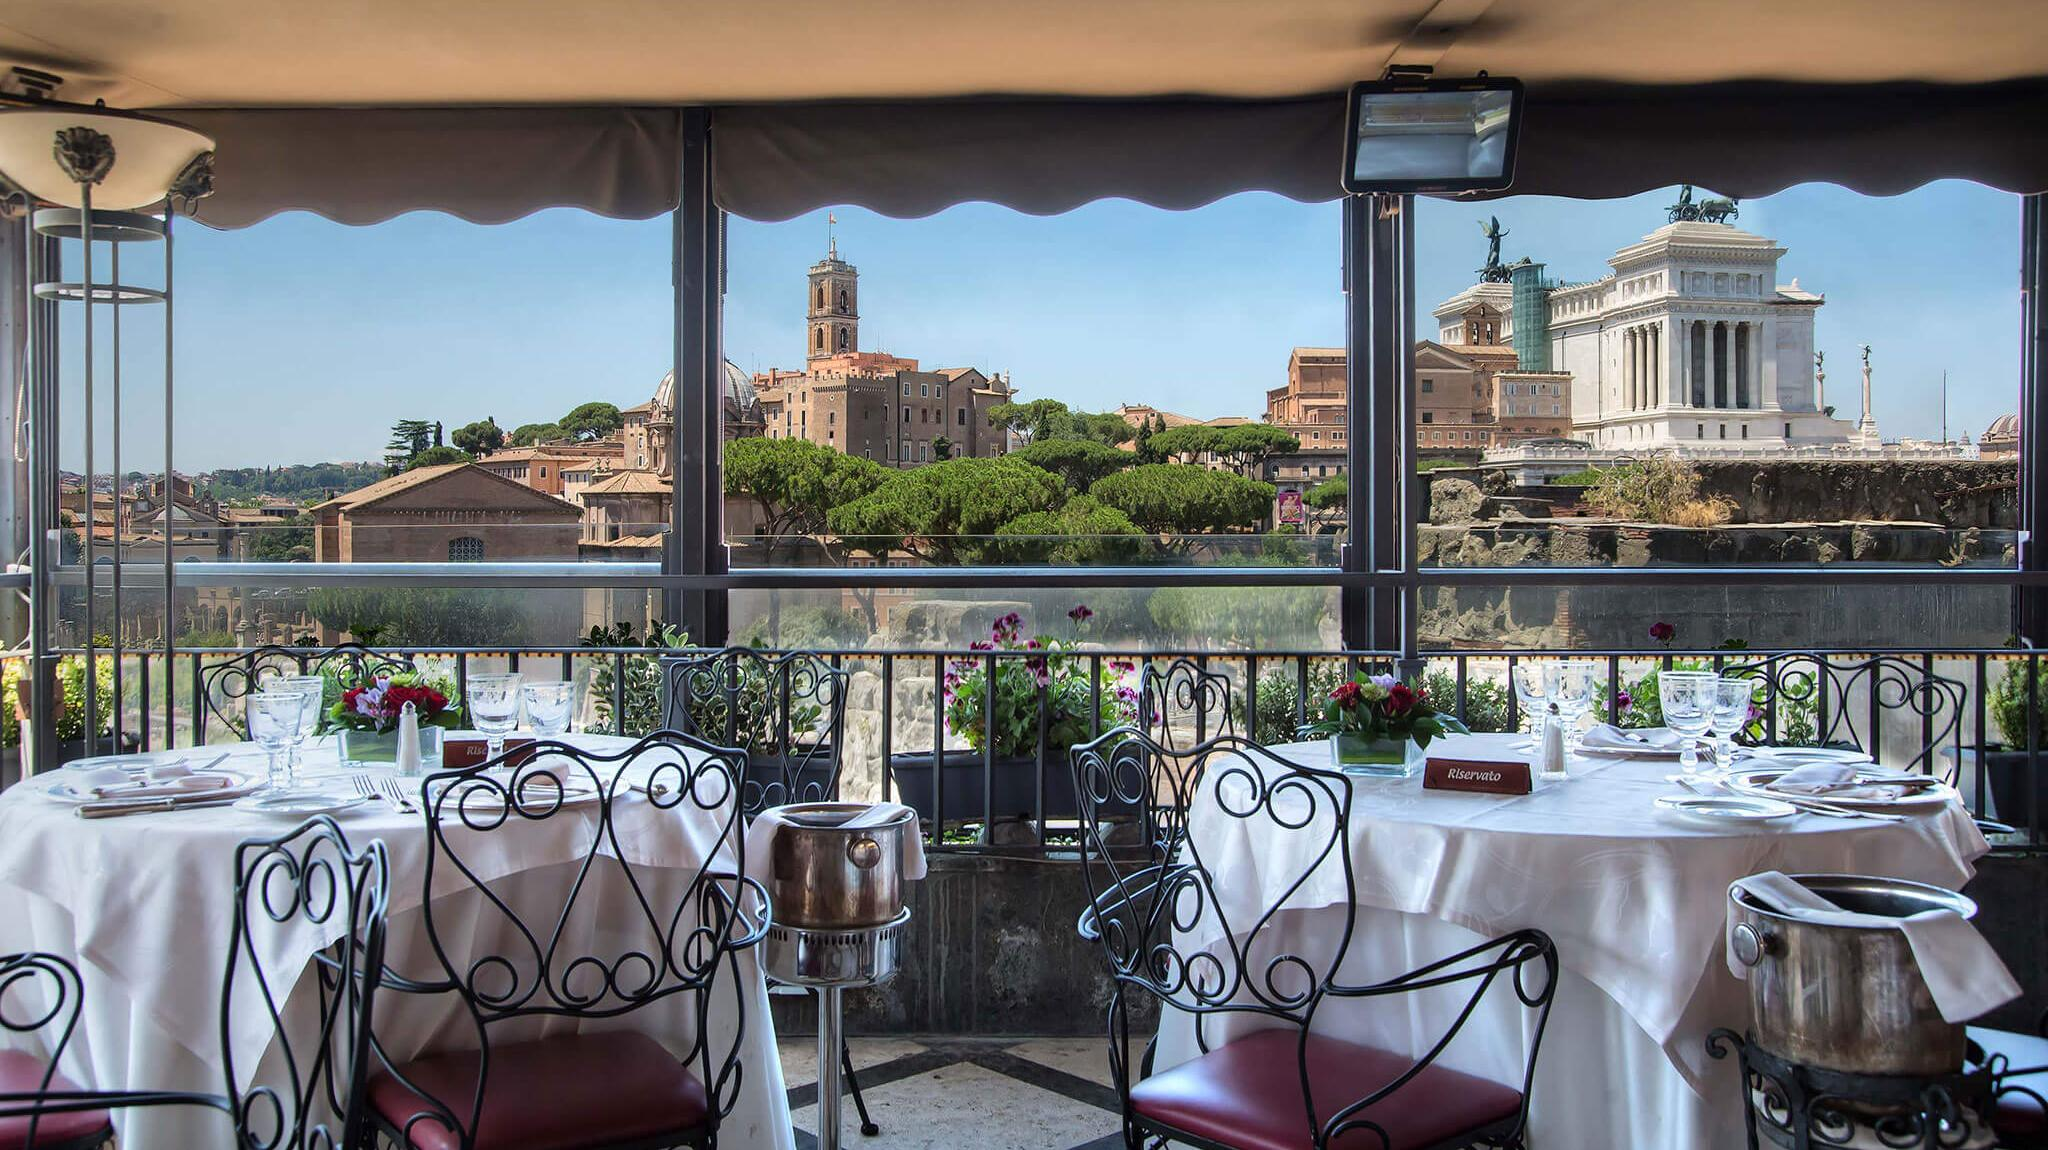 Hotel forum rome roof garden restaurant with view for Roofing forum